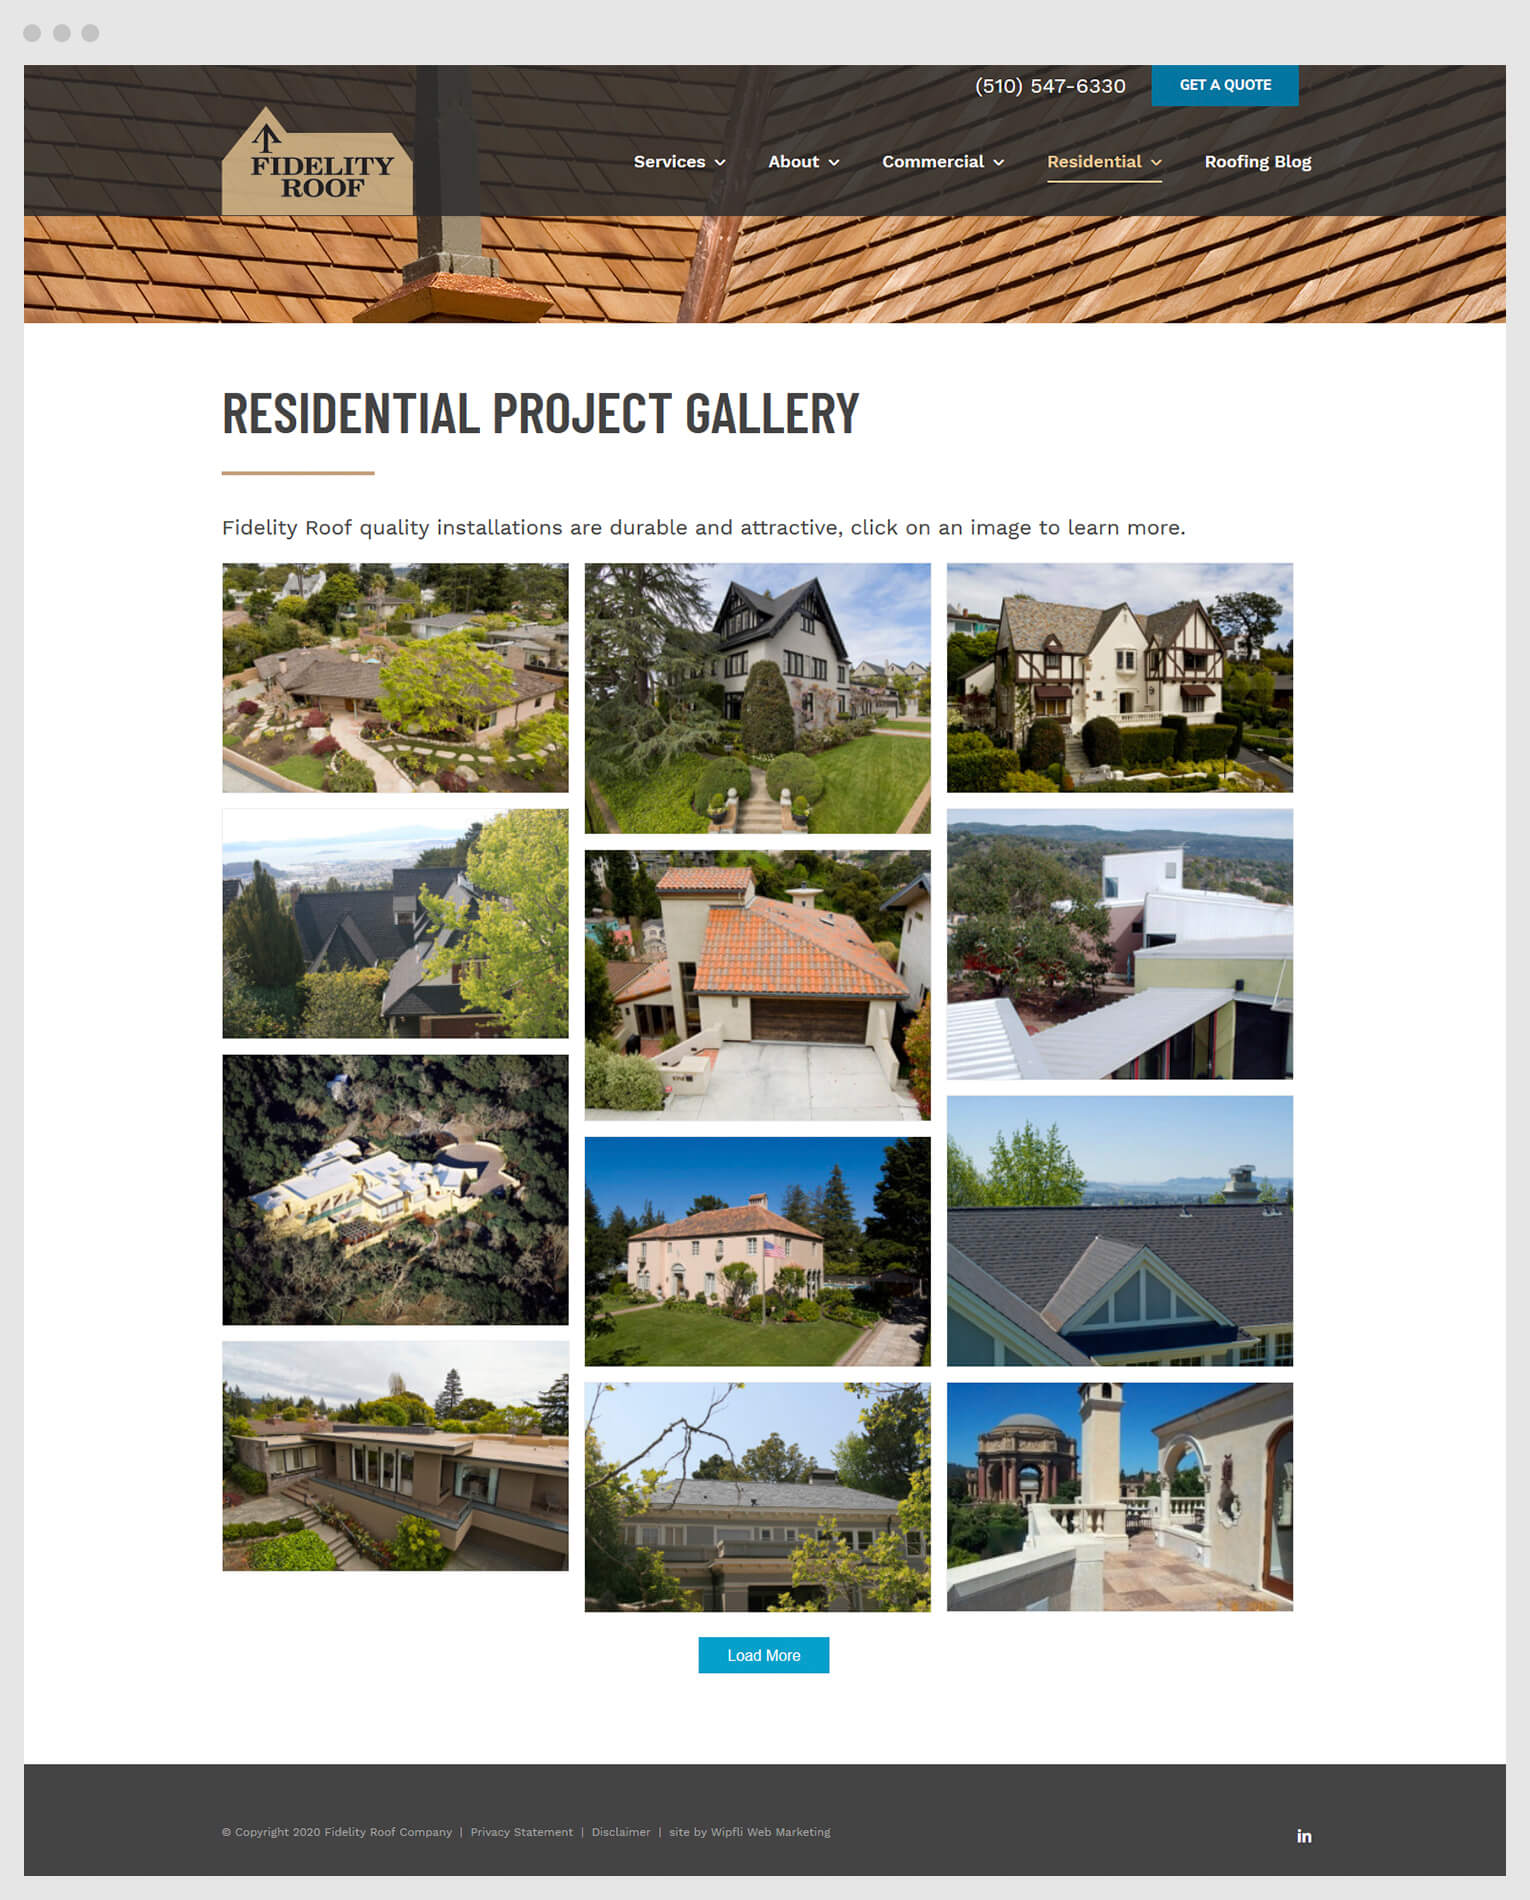 Screenshot of the Fidelity Roof gallery page